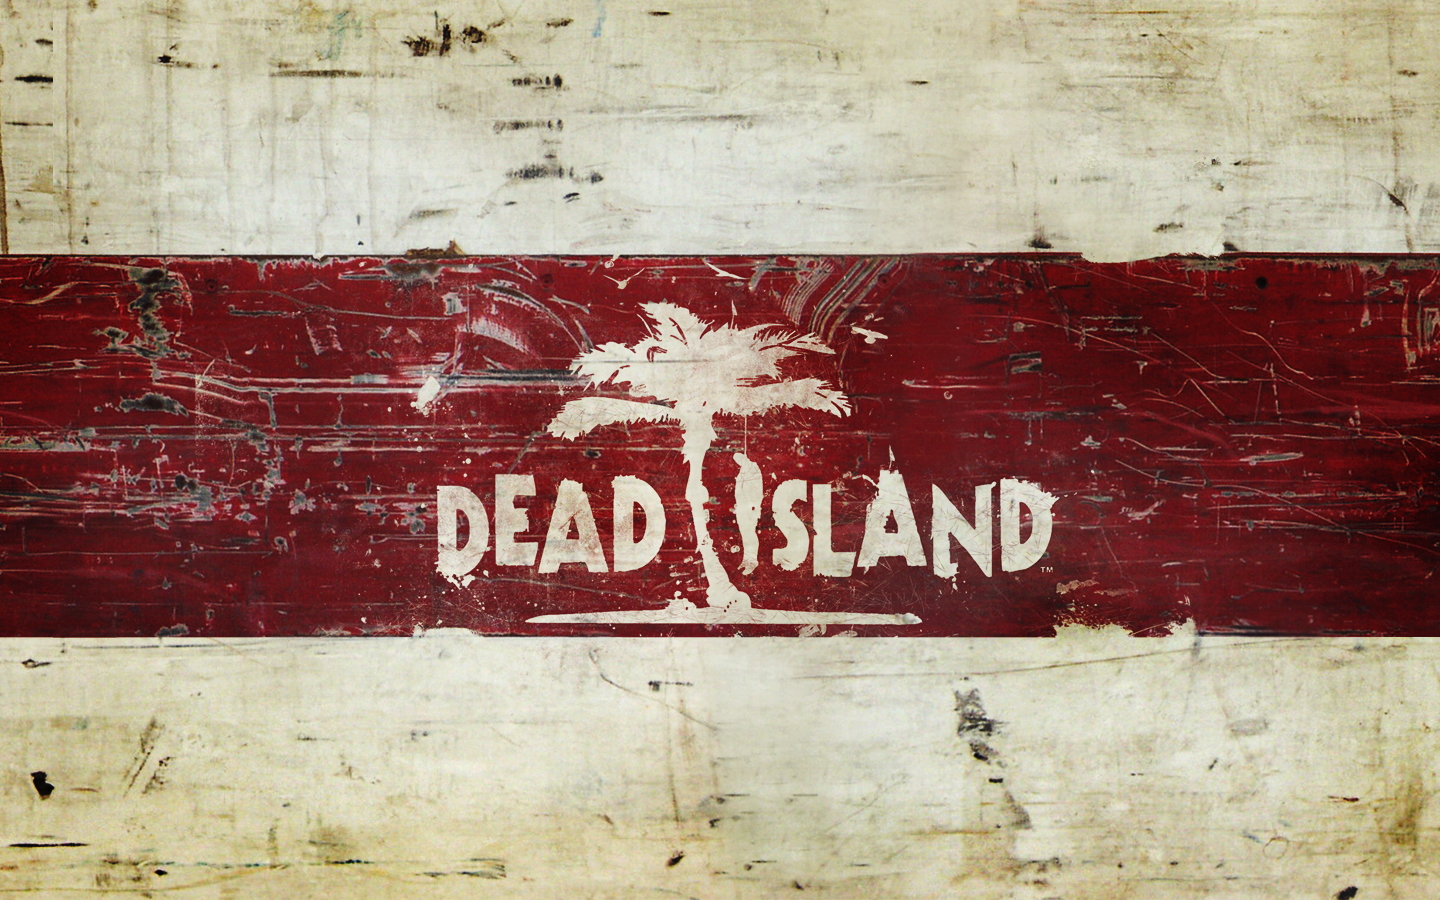 ... wallpaper - dead island pc game scary wallpaper ~ Scary Wallpapers